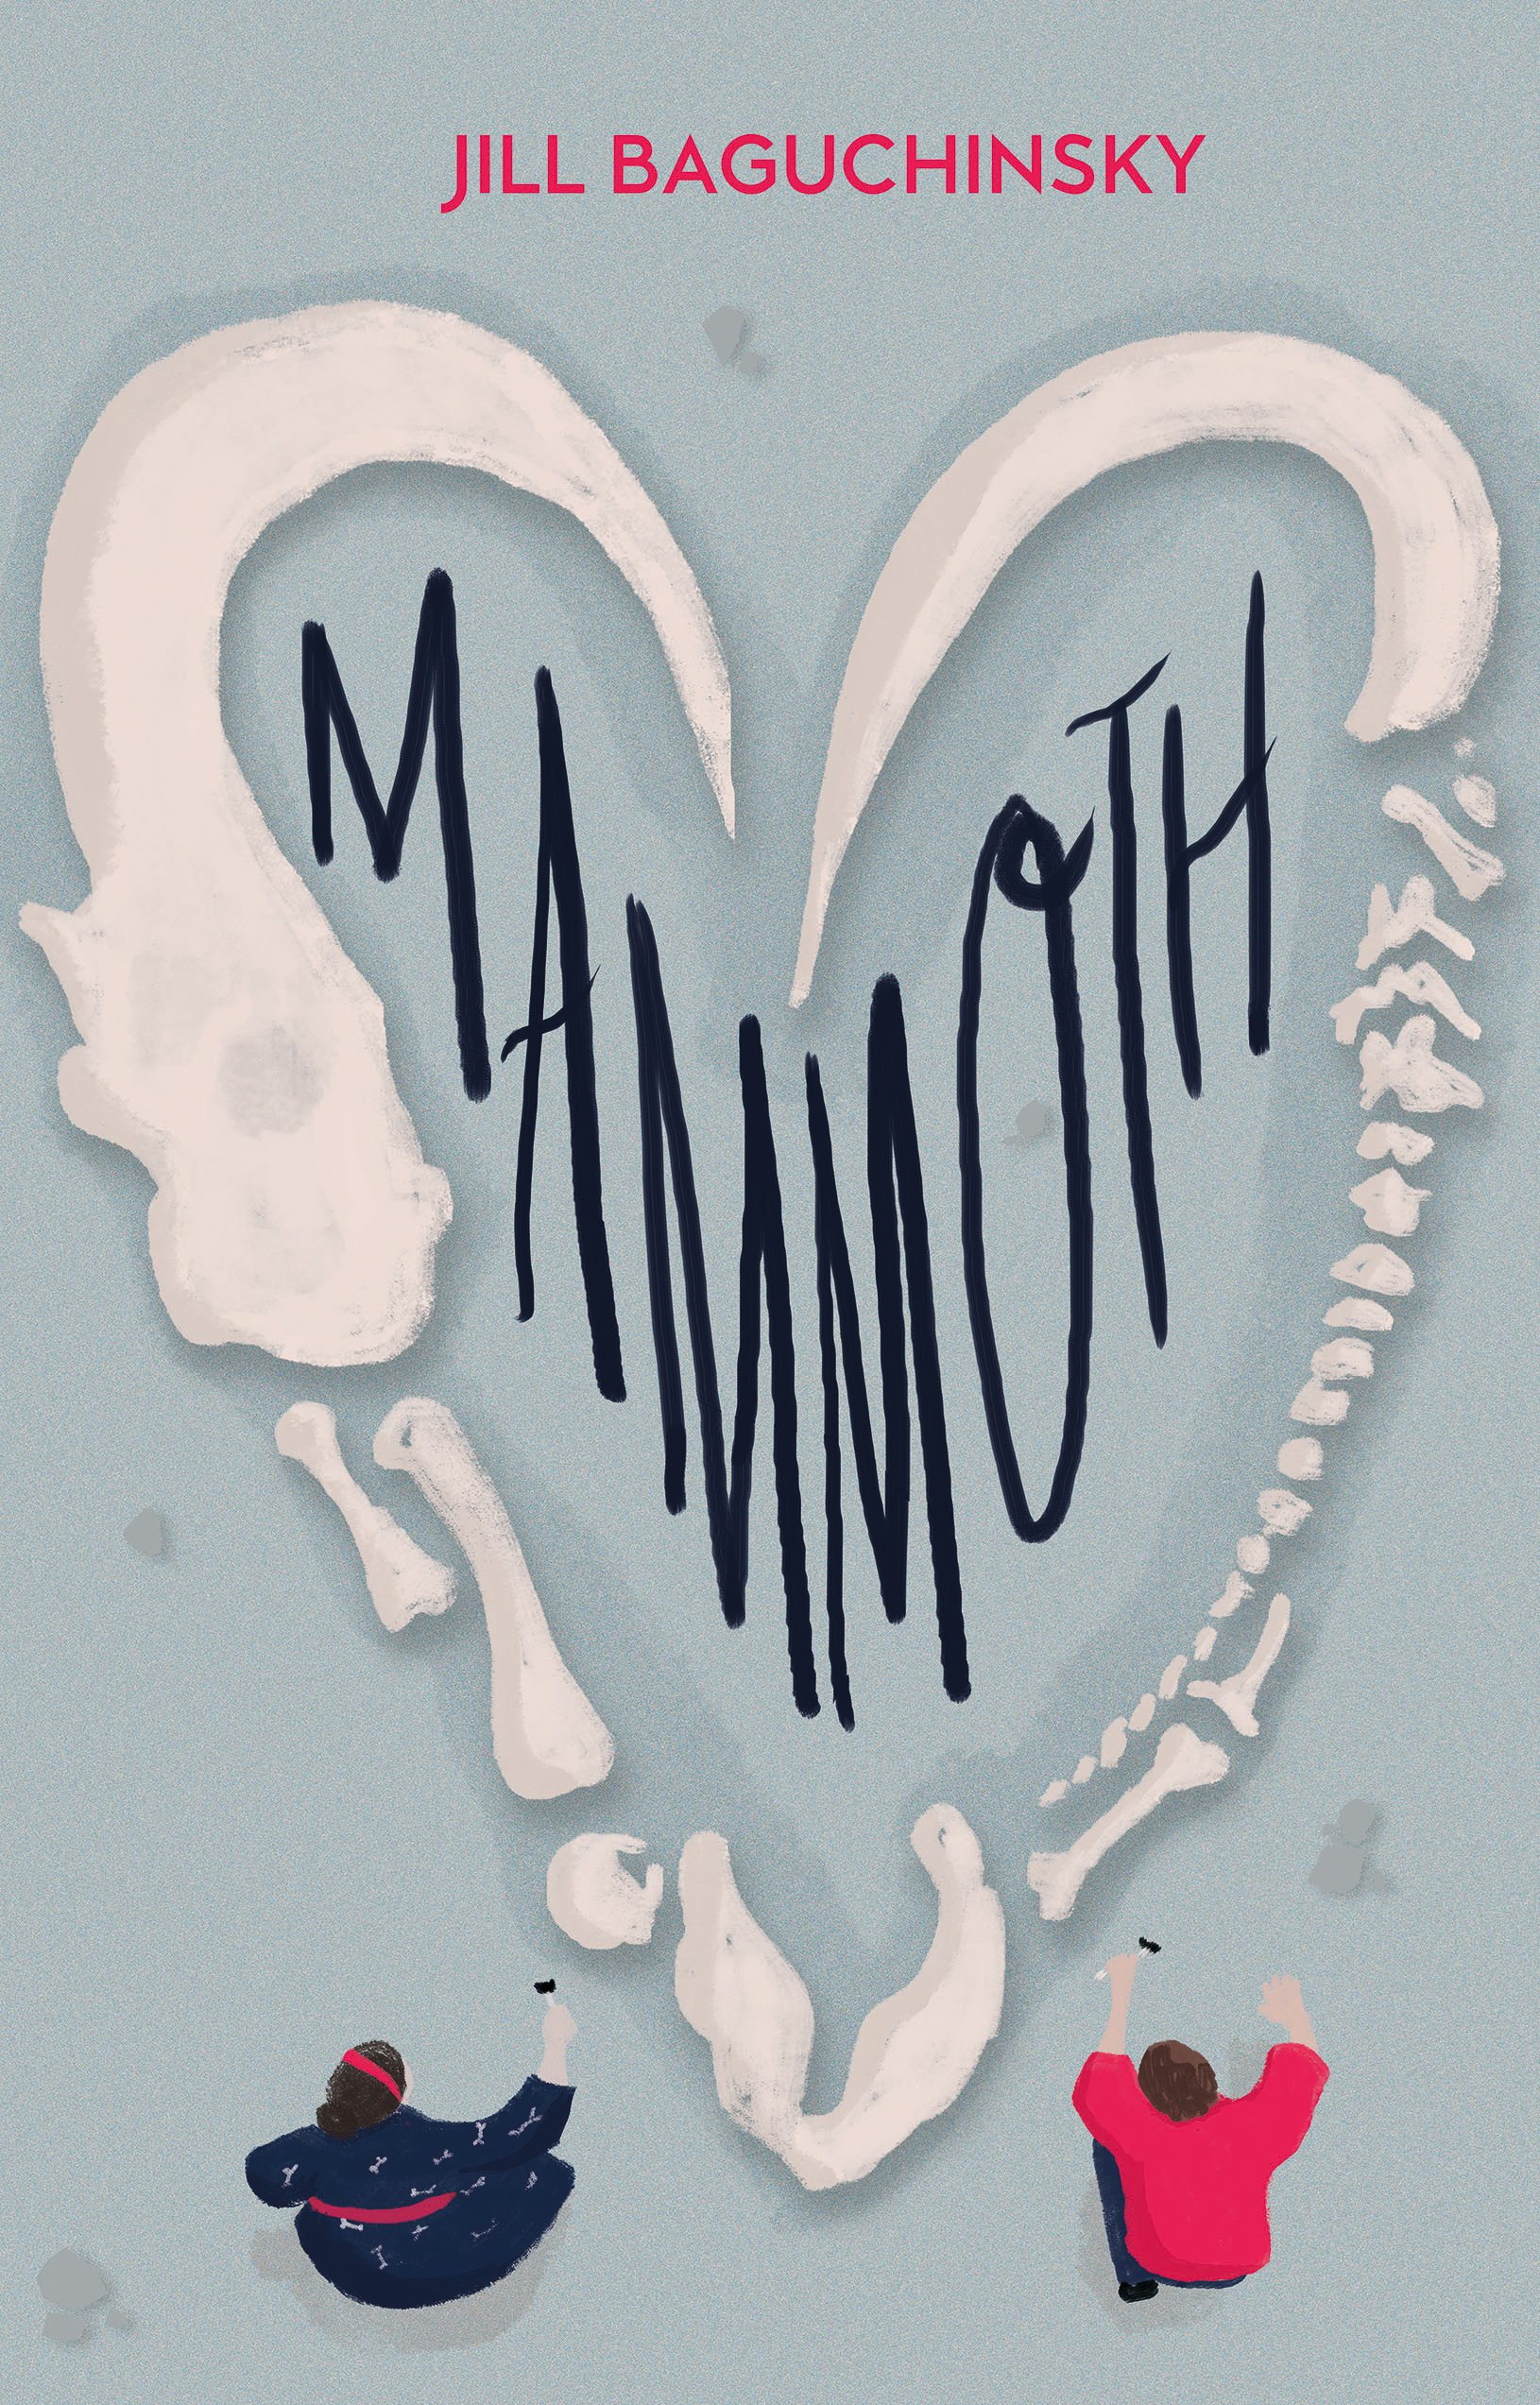 Mammoth by Jill Baguchinsky